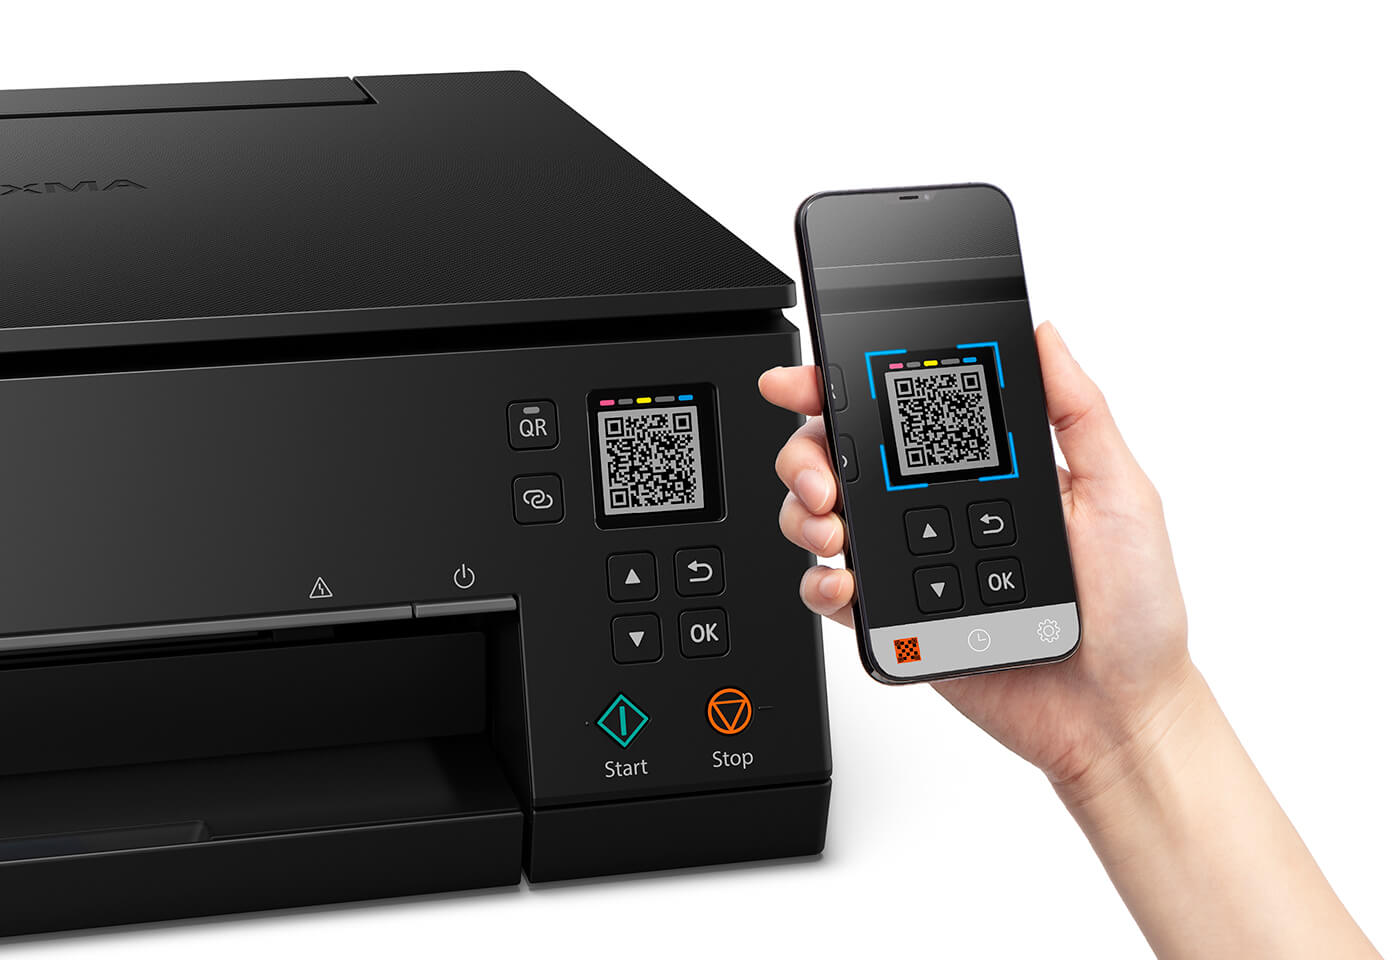 Print wirelessly with QR code